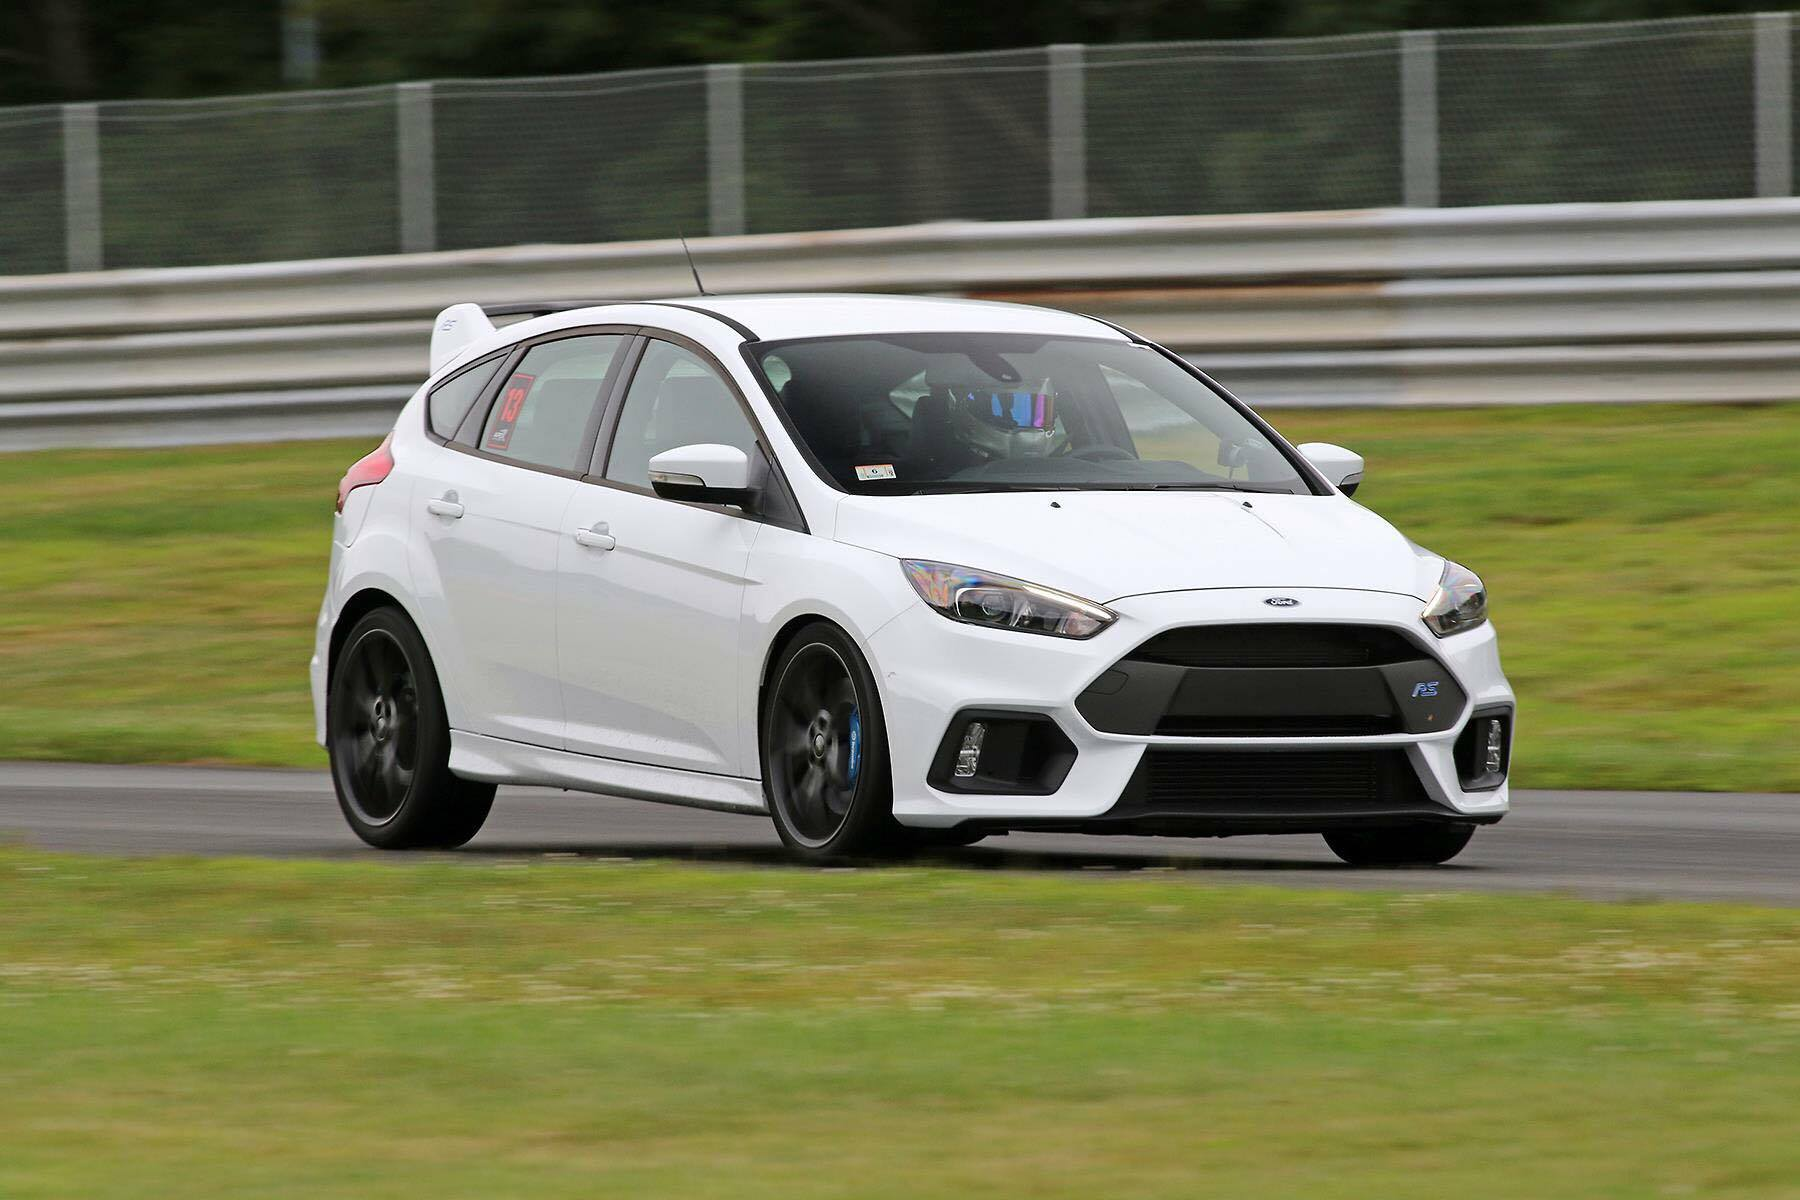 Kaizen Tuning's Ford Focus RS - Exterior